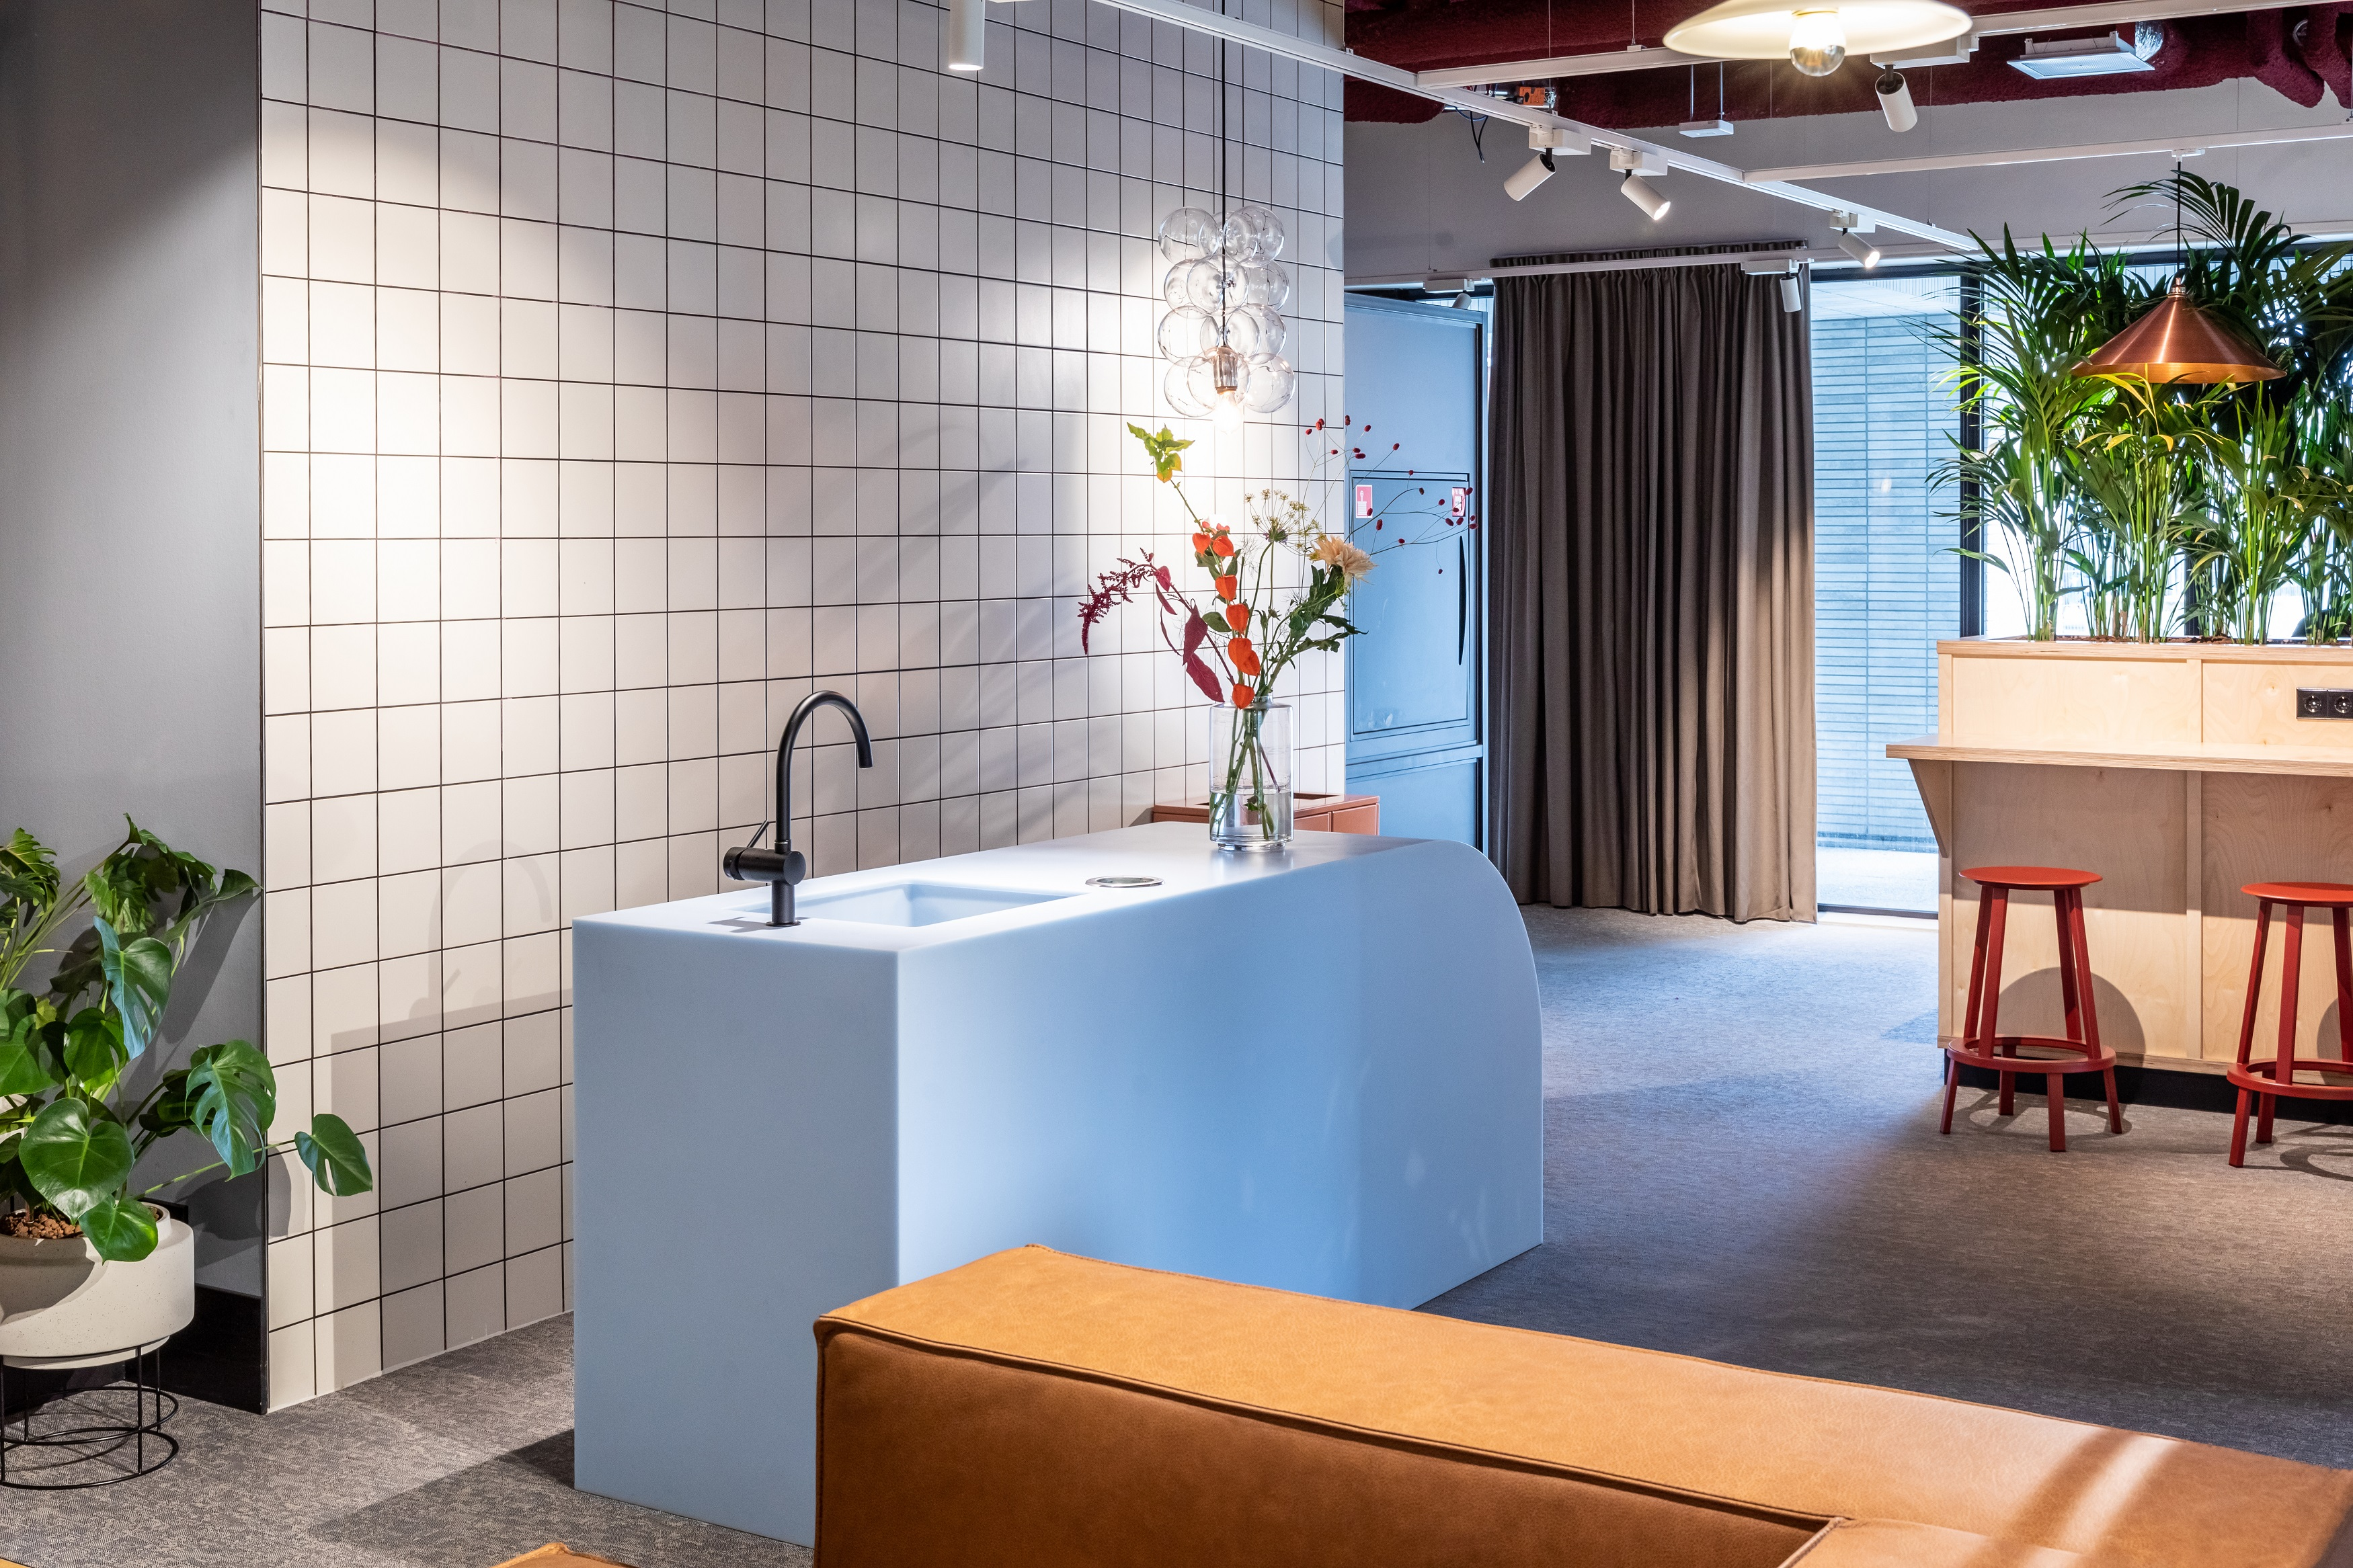 OurDomain Amsterdam Diemen lounge with sink